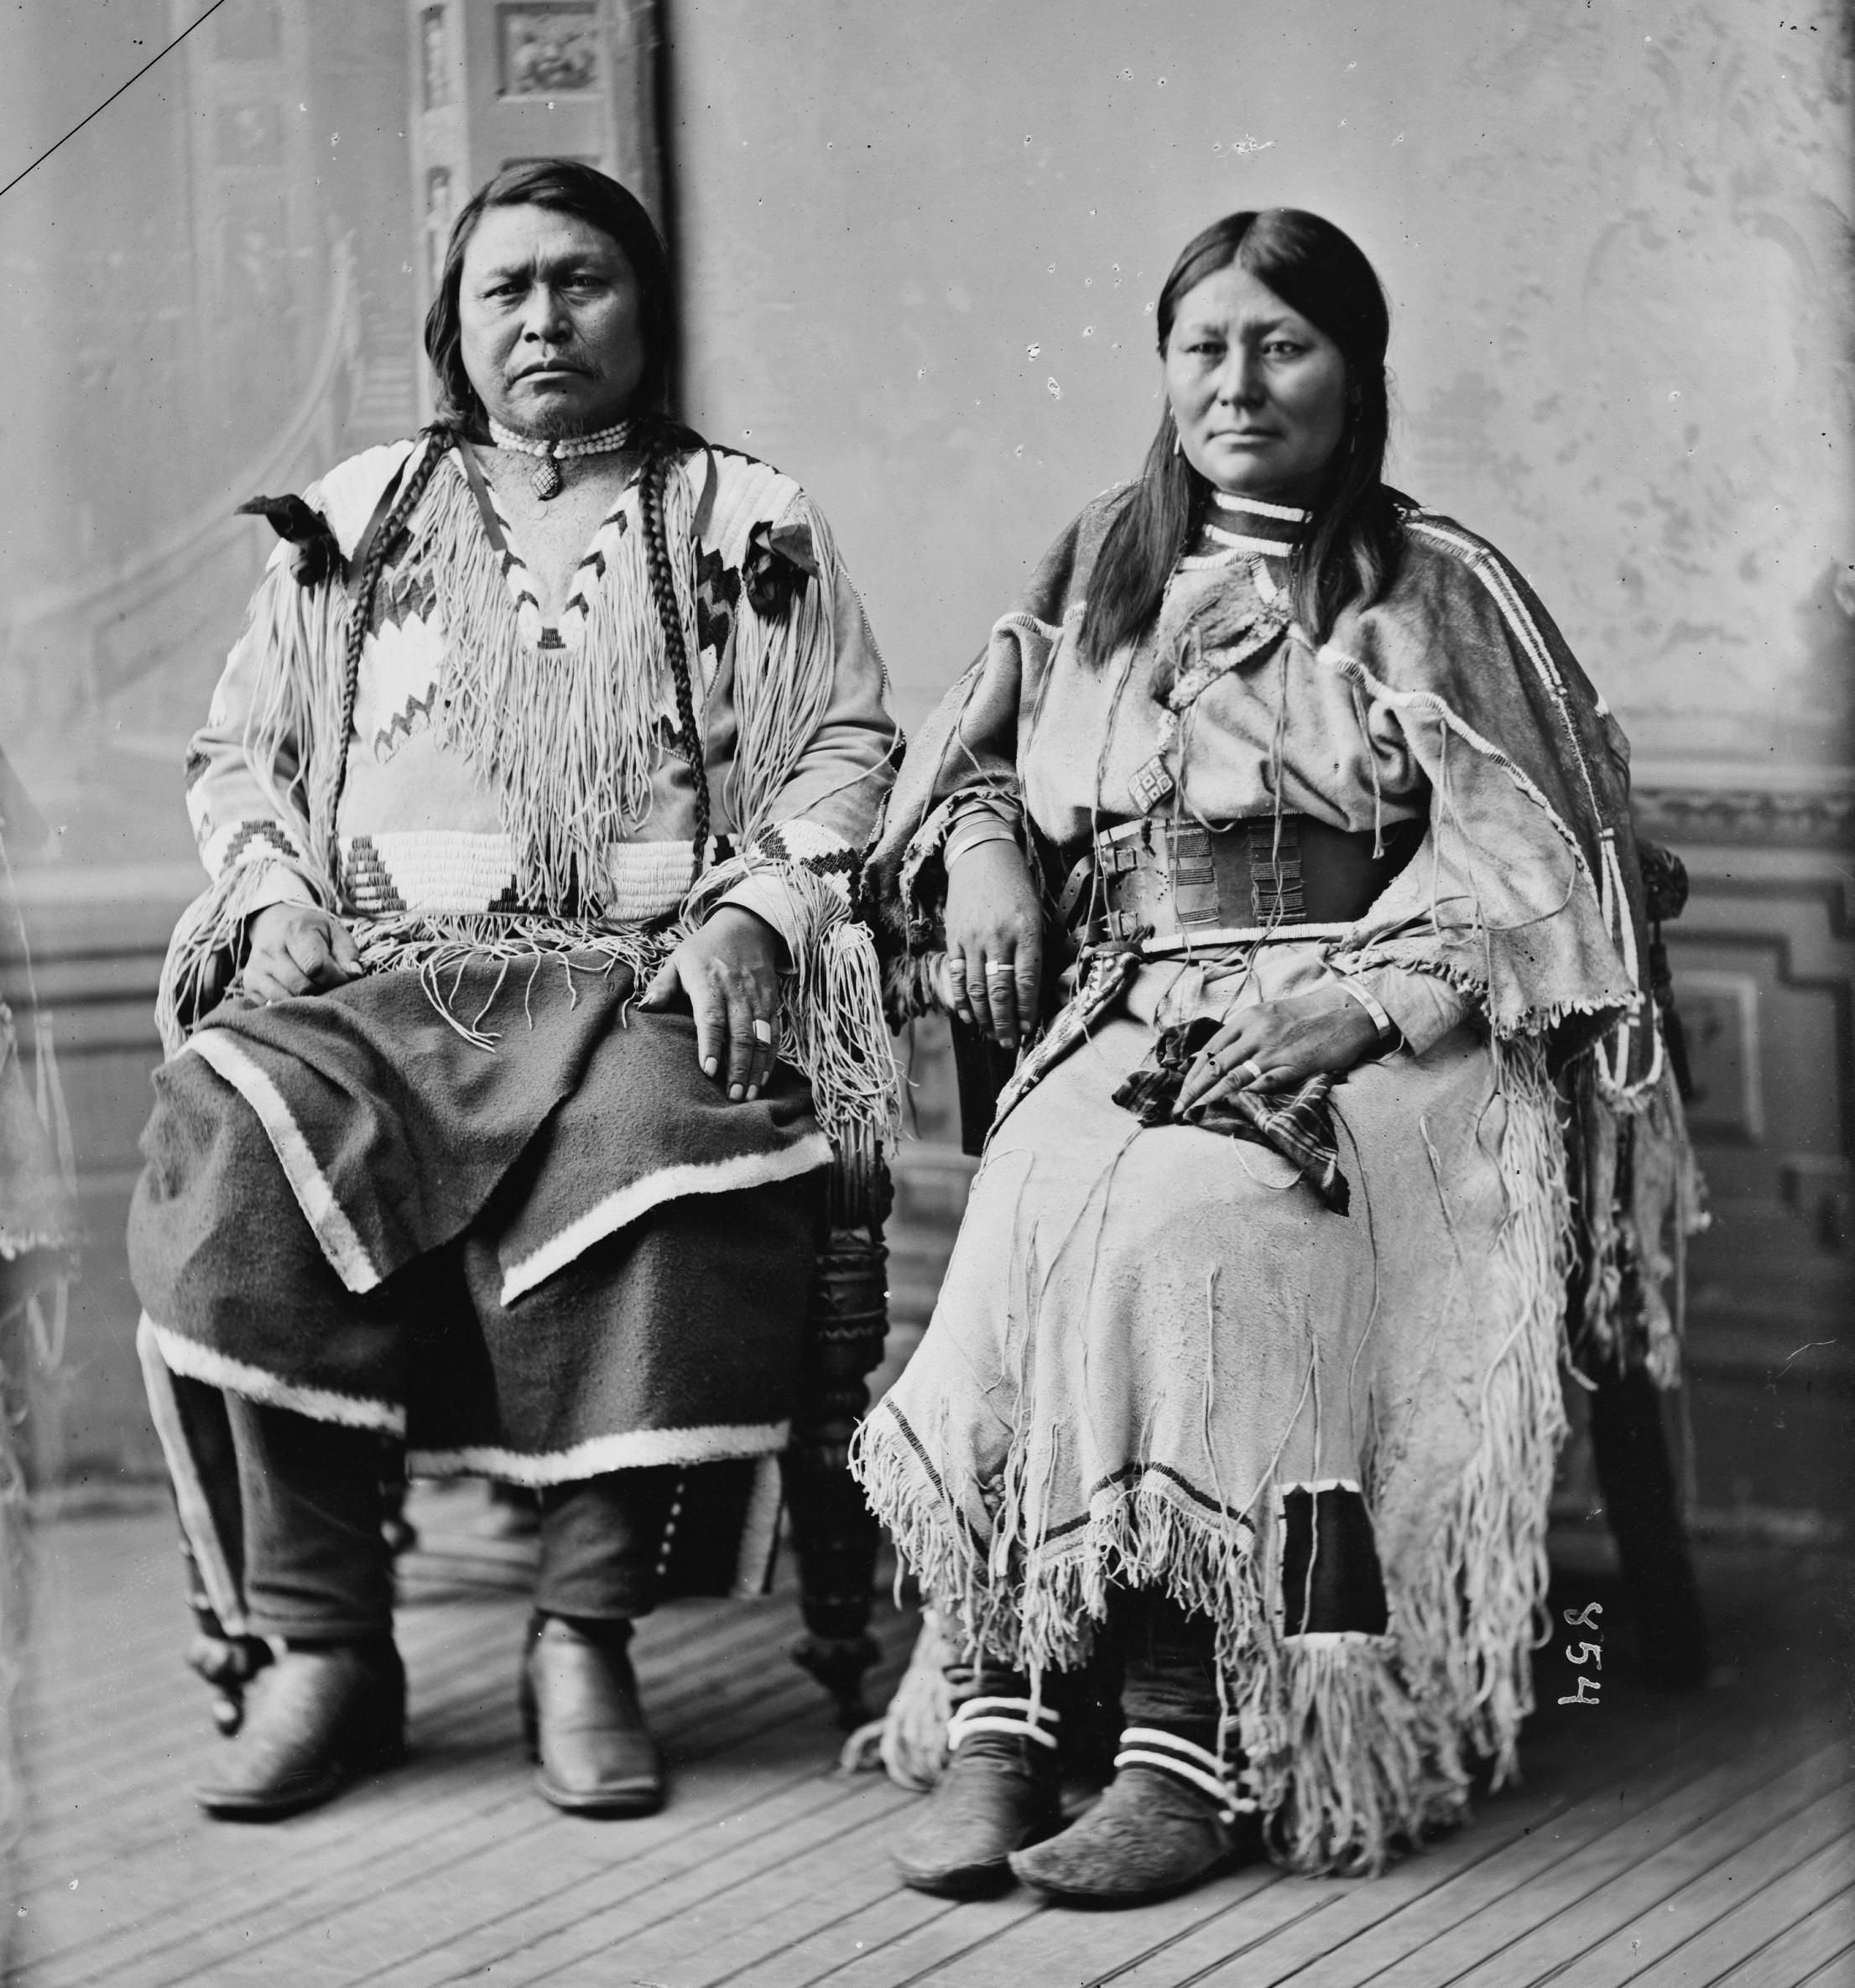 Chief Ignacio Was A Chief Of The Weeminuche Band Of The Ute Tribe Of American